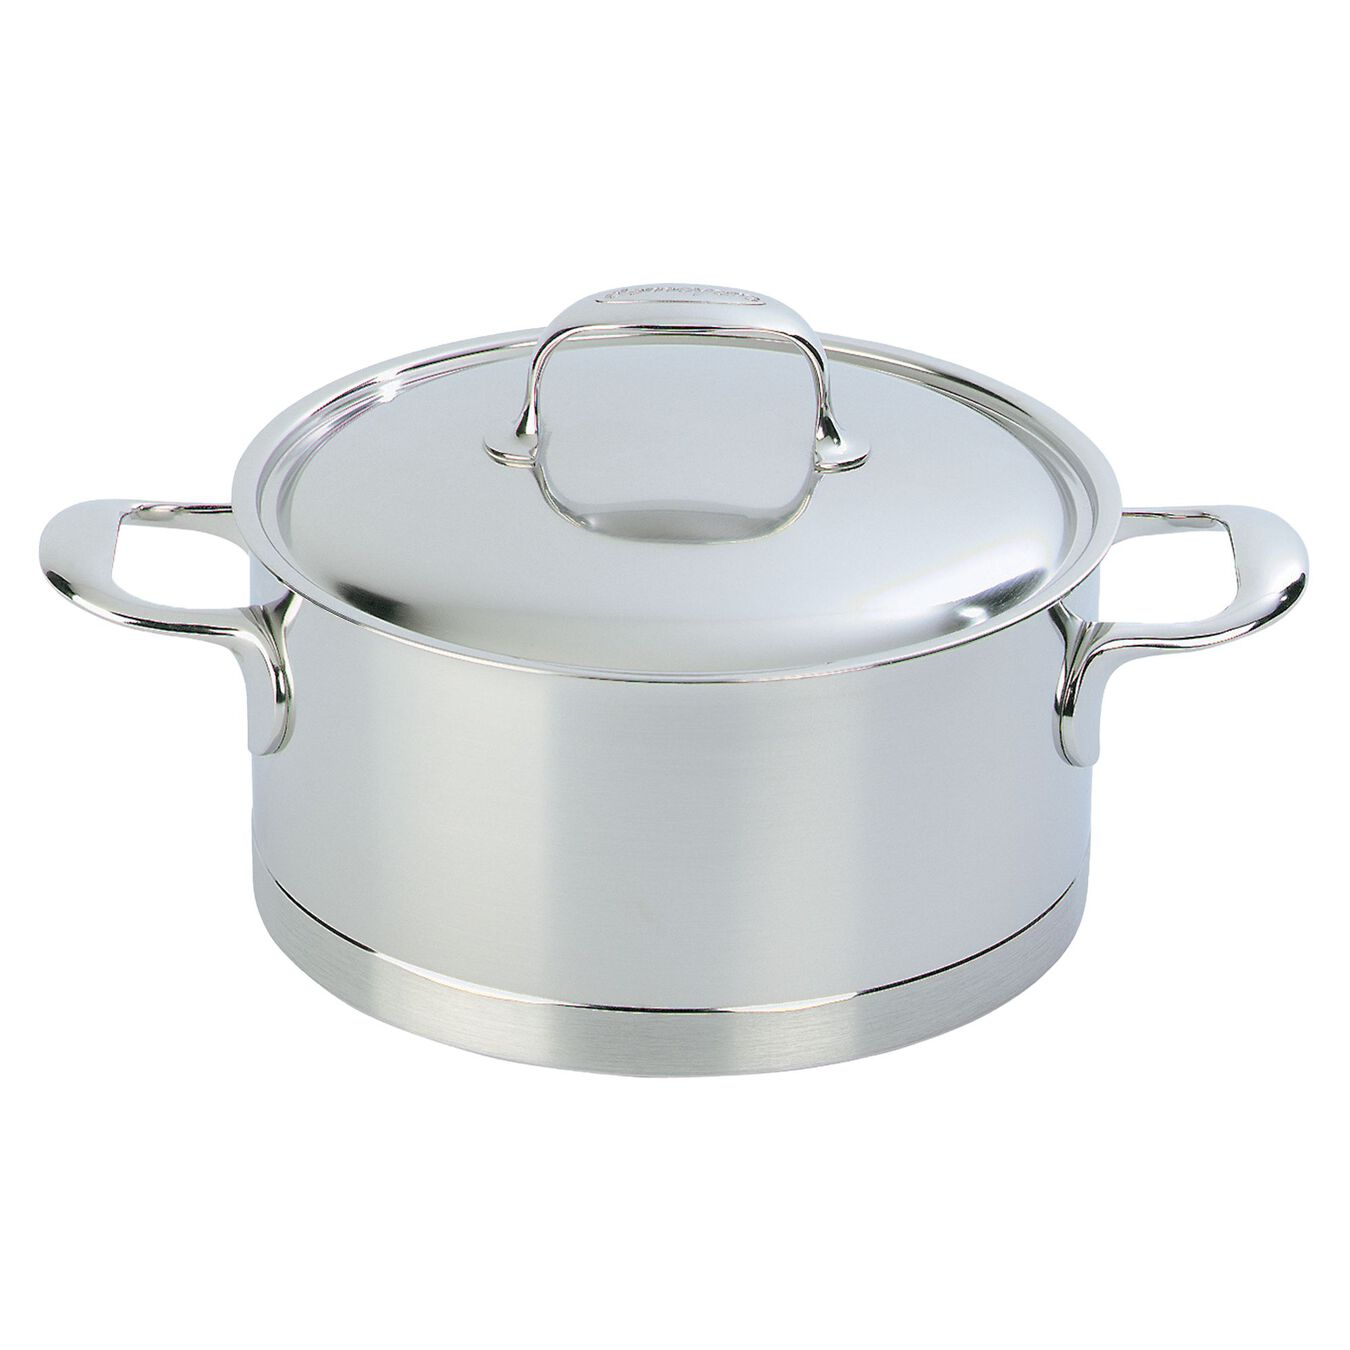 10 Piece 18/10 Stainless Steel 10-Piece Cookware Set,,large 5